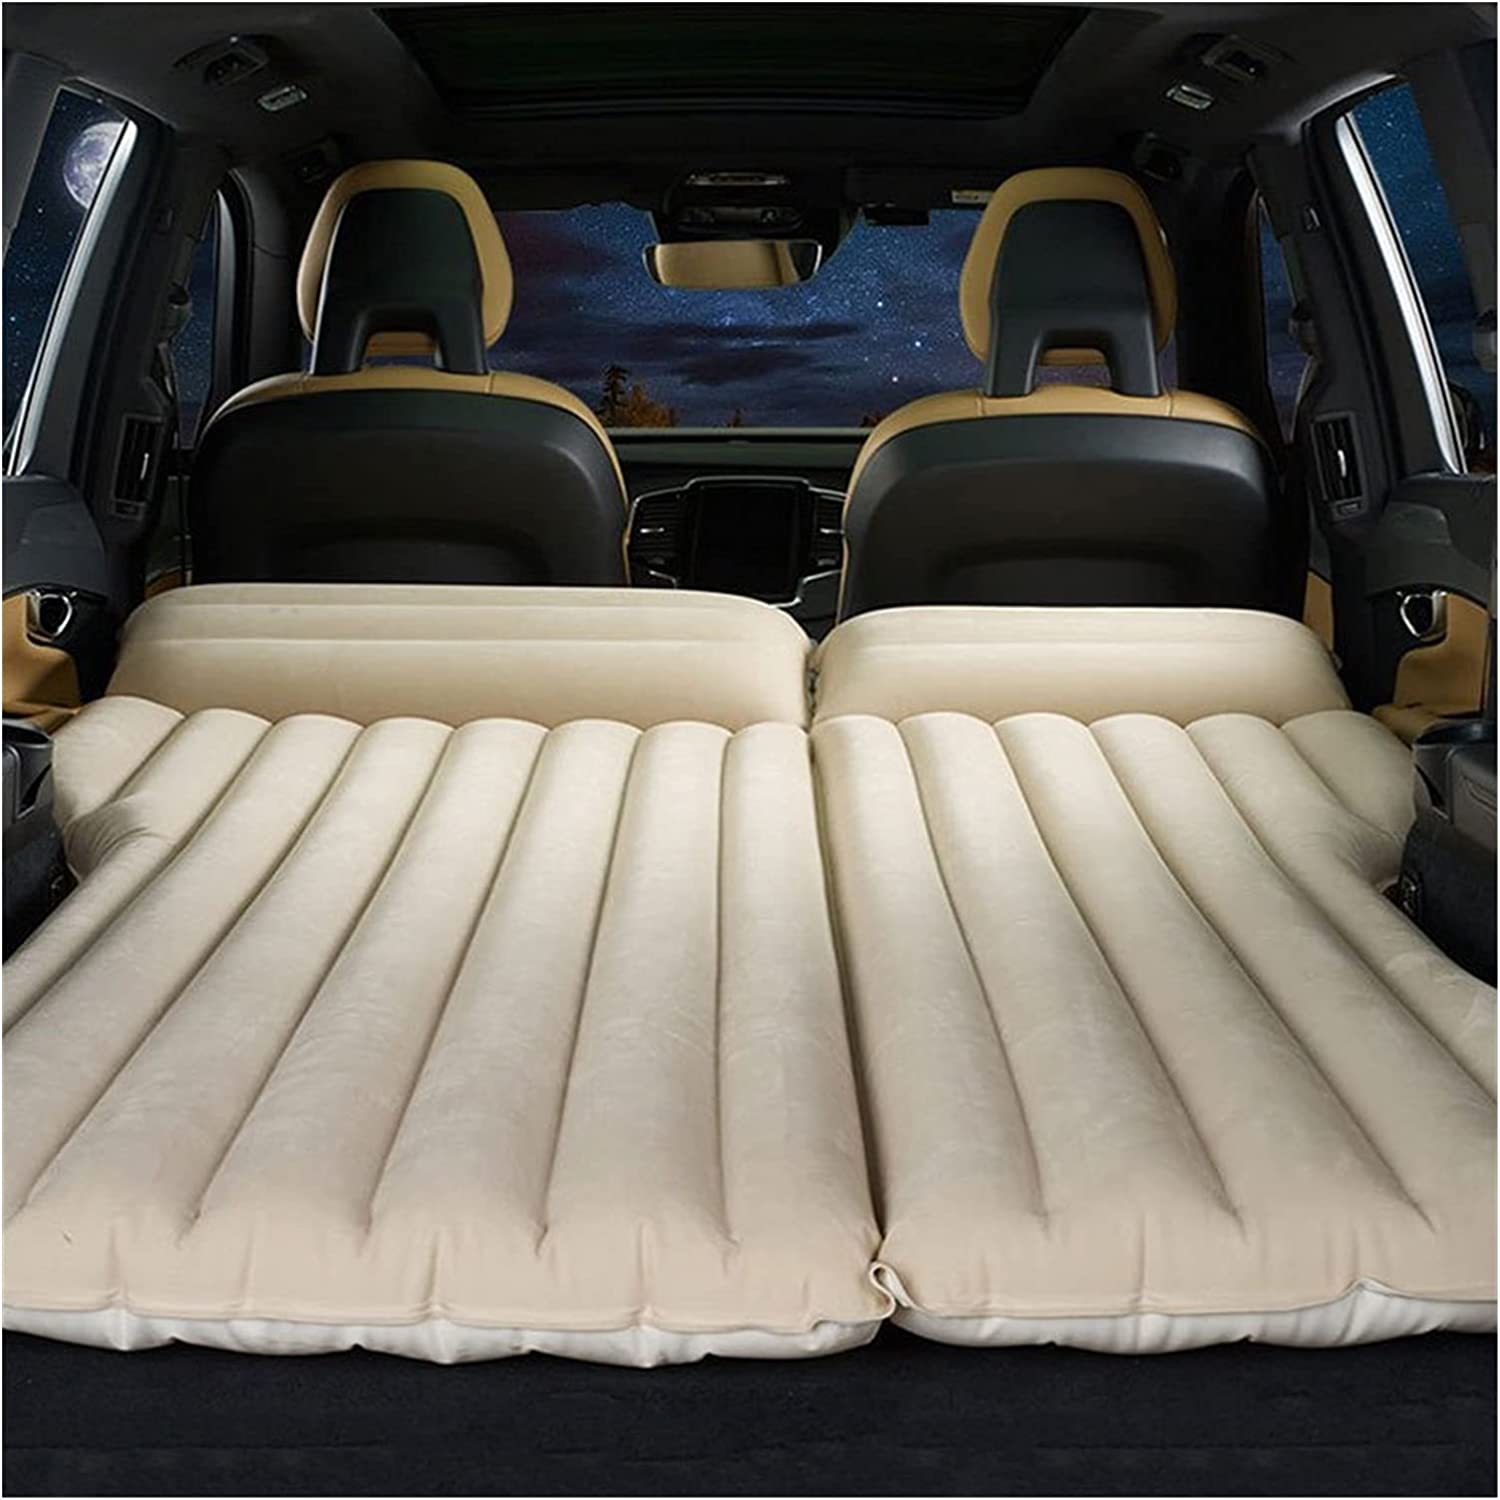 Inflatable Car Air Al sold out. Mattress Bed Portable Travel Folding Ranking TOP12